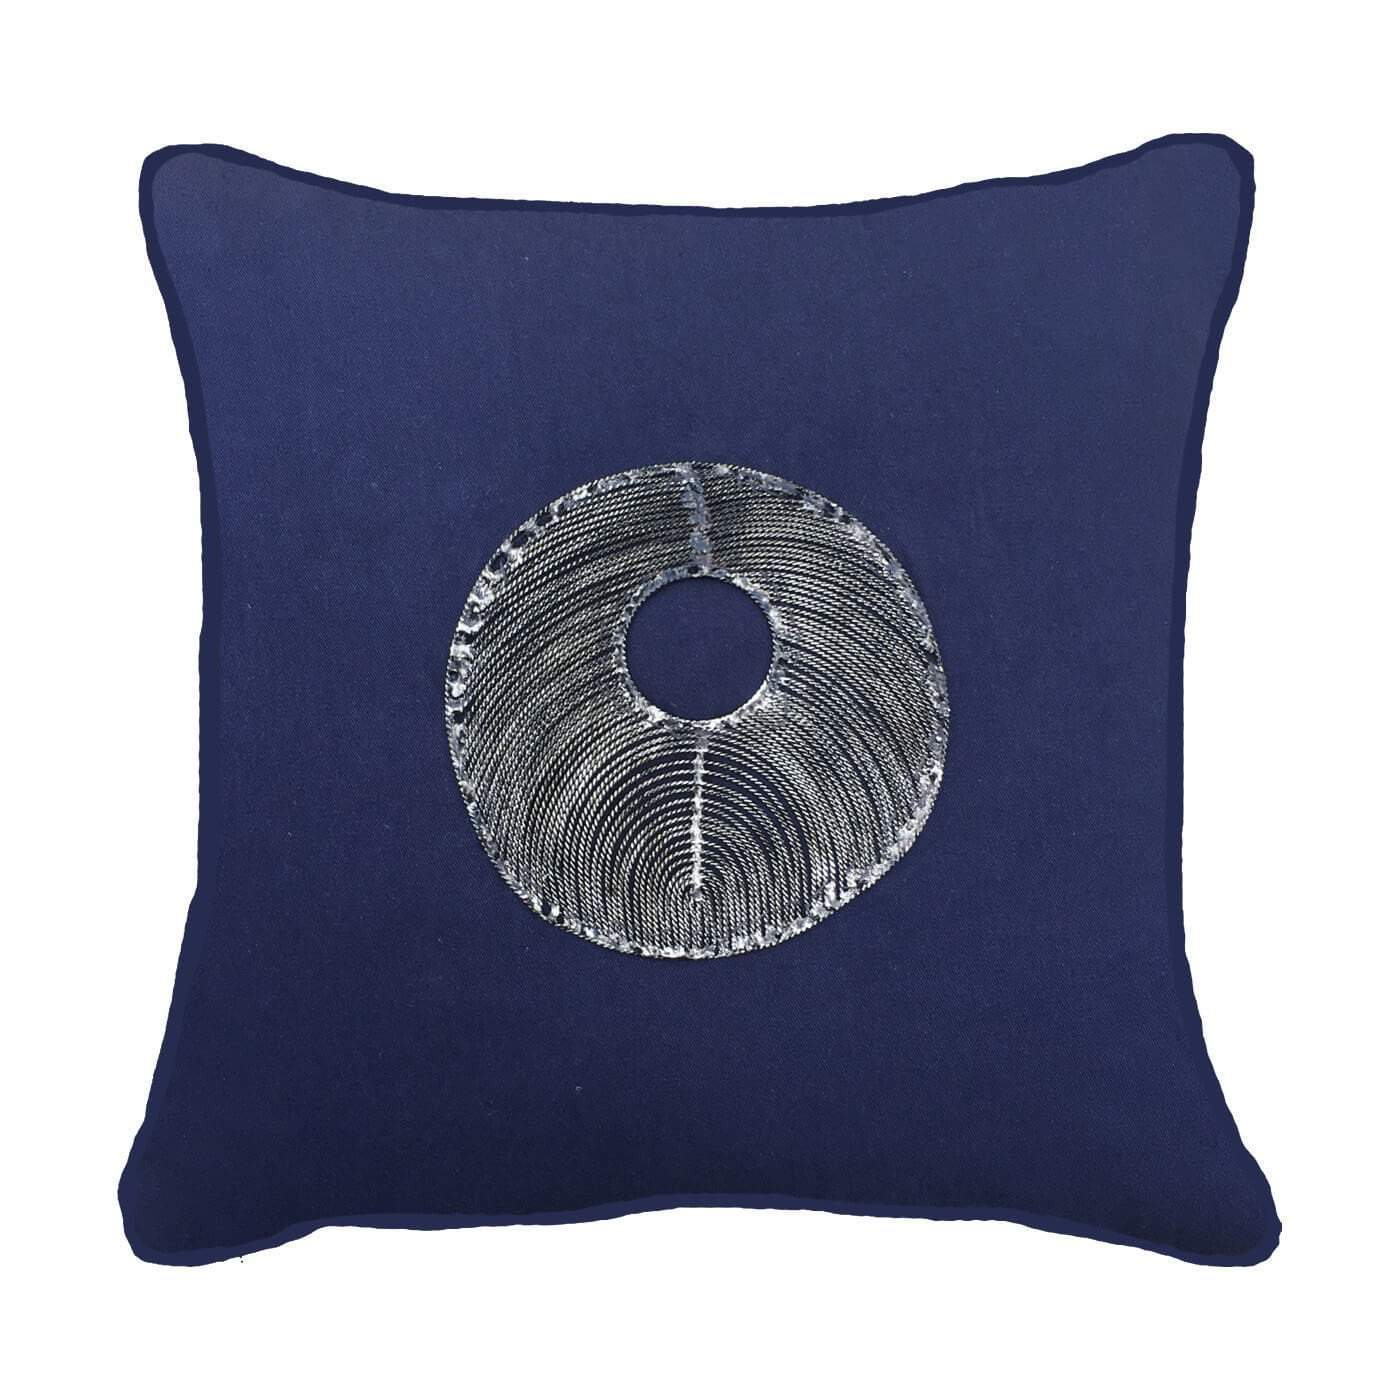 Bandhini Homewear Design Medium Cushion Navy / Naval Sea / 20 x 20 Disc Silver Navy Medium Cushion 50 x 50 cm